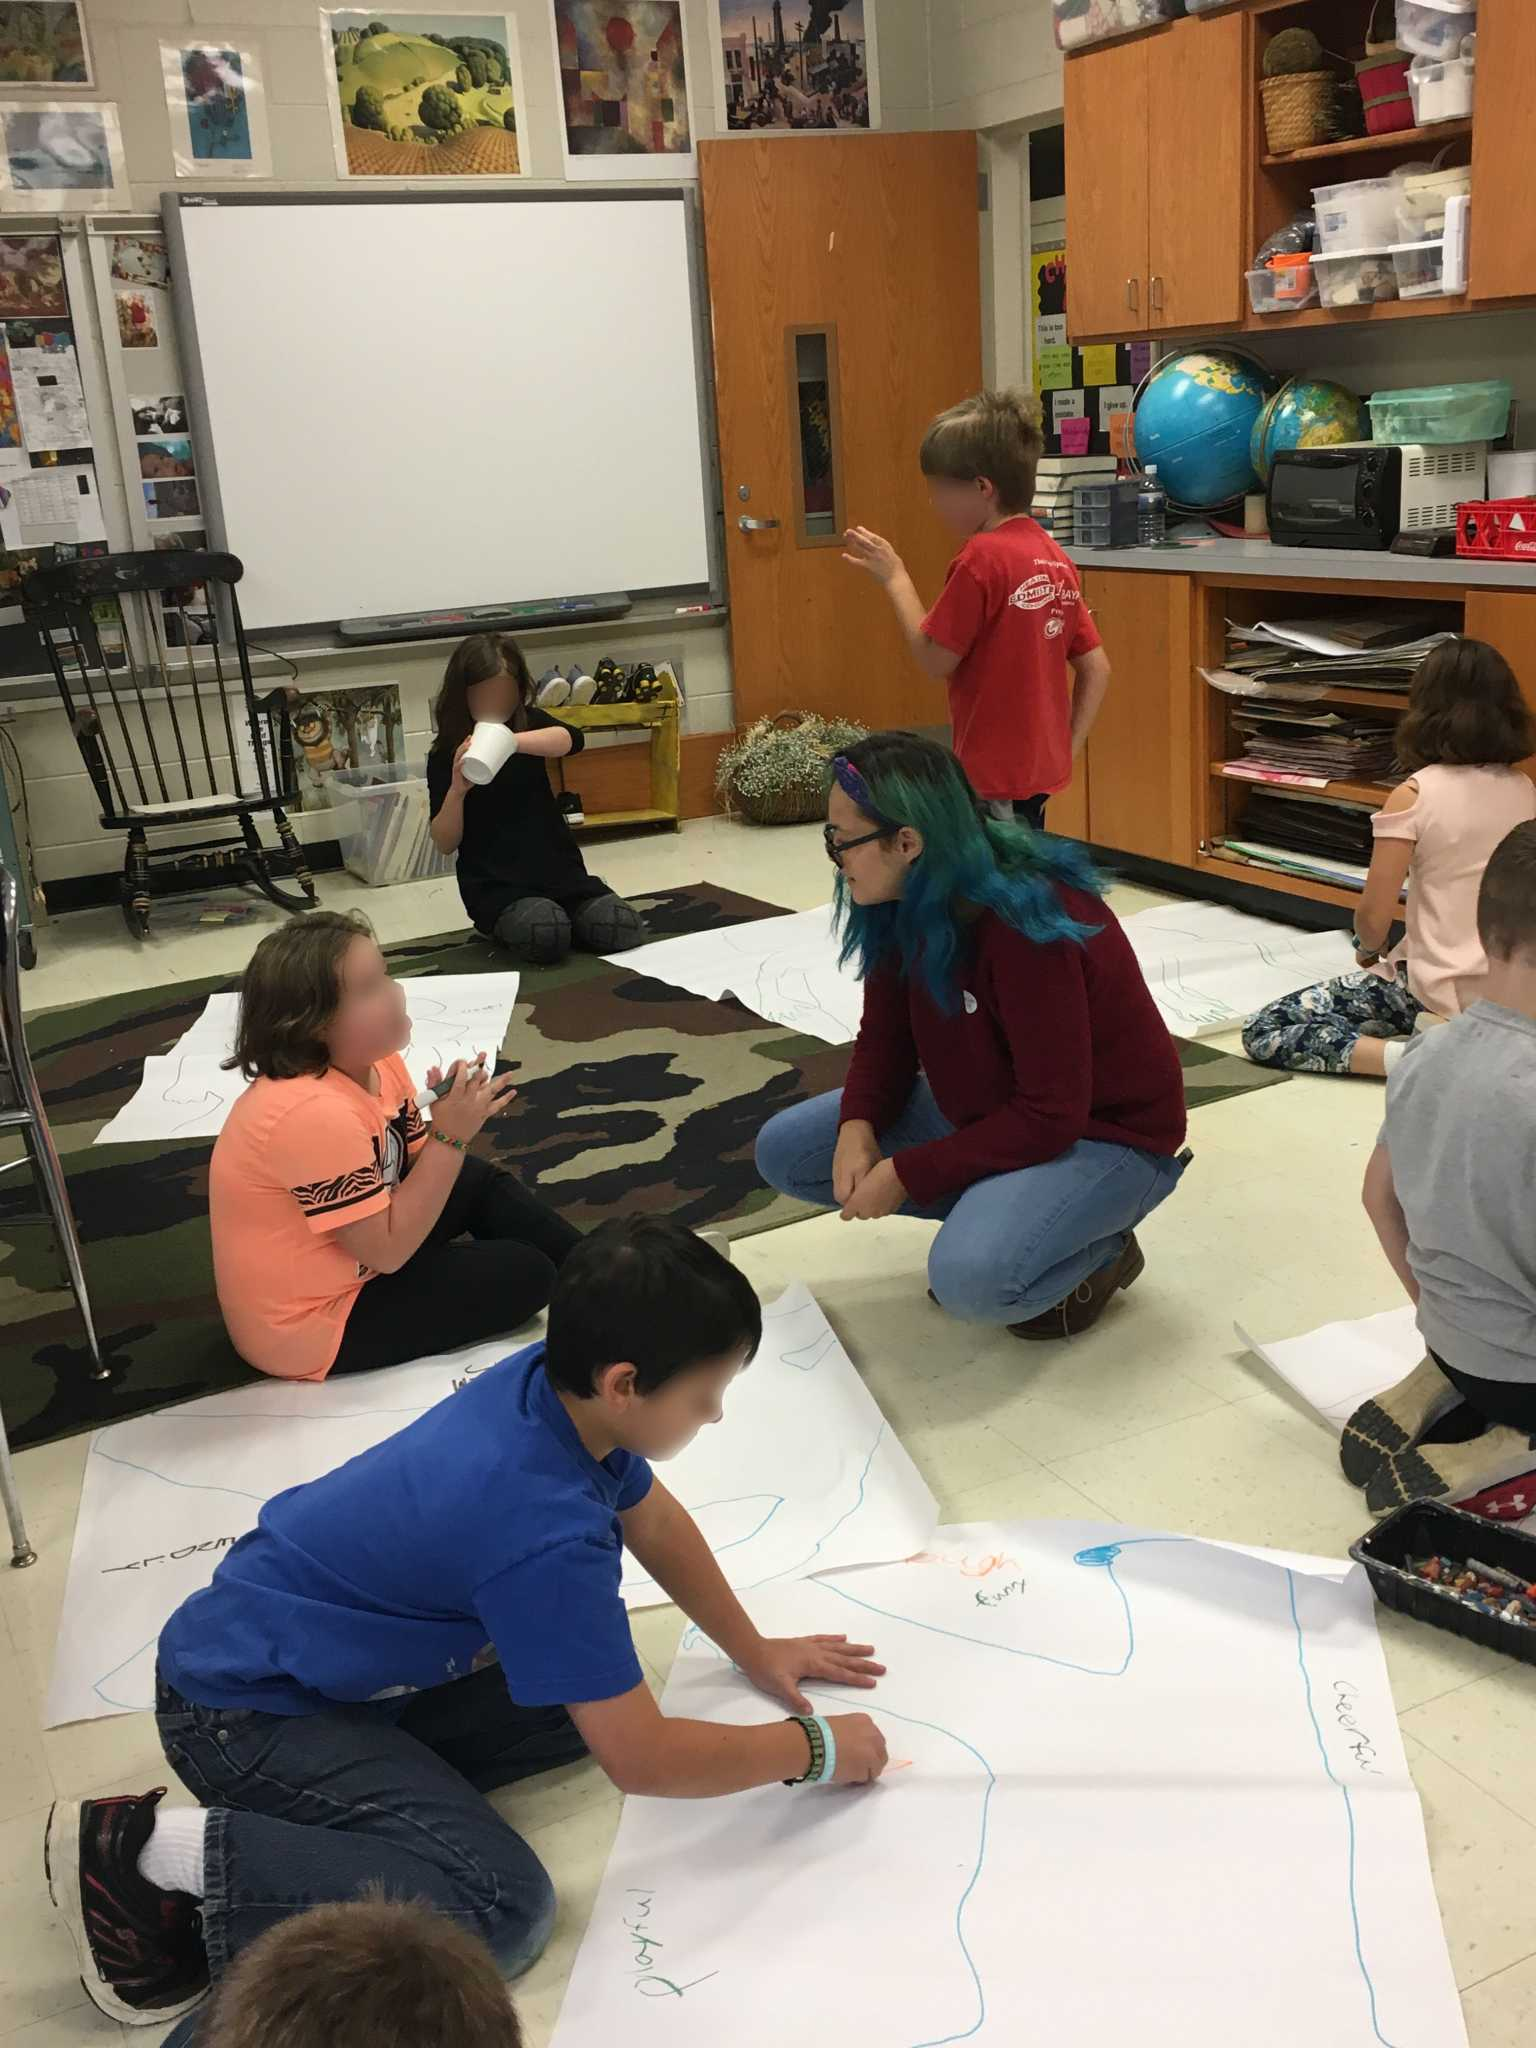 Cami Truitt helps 3rd grade students formulate ideas during her field experience.